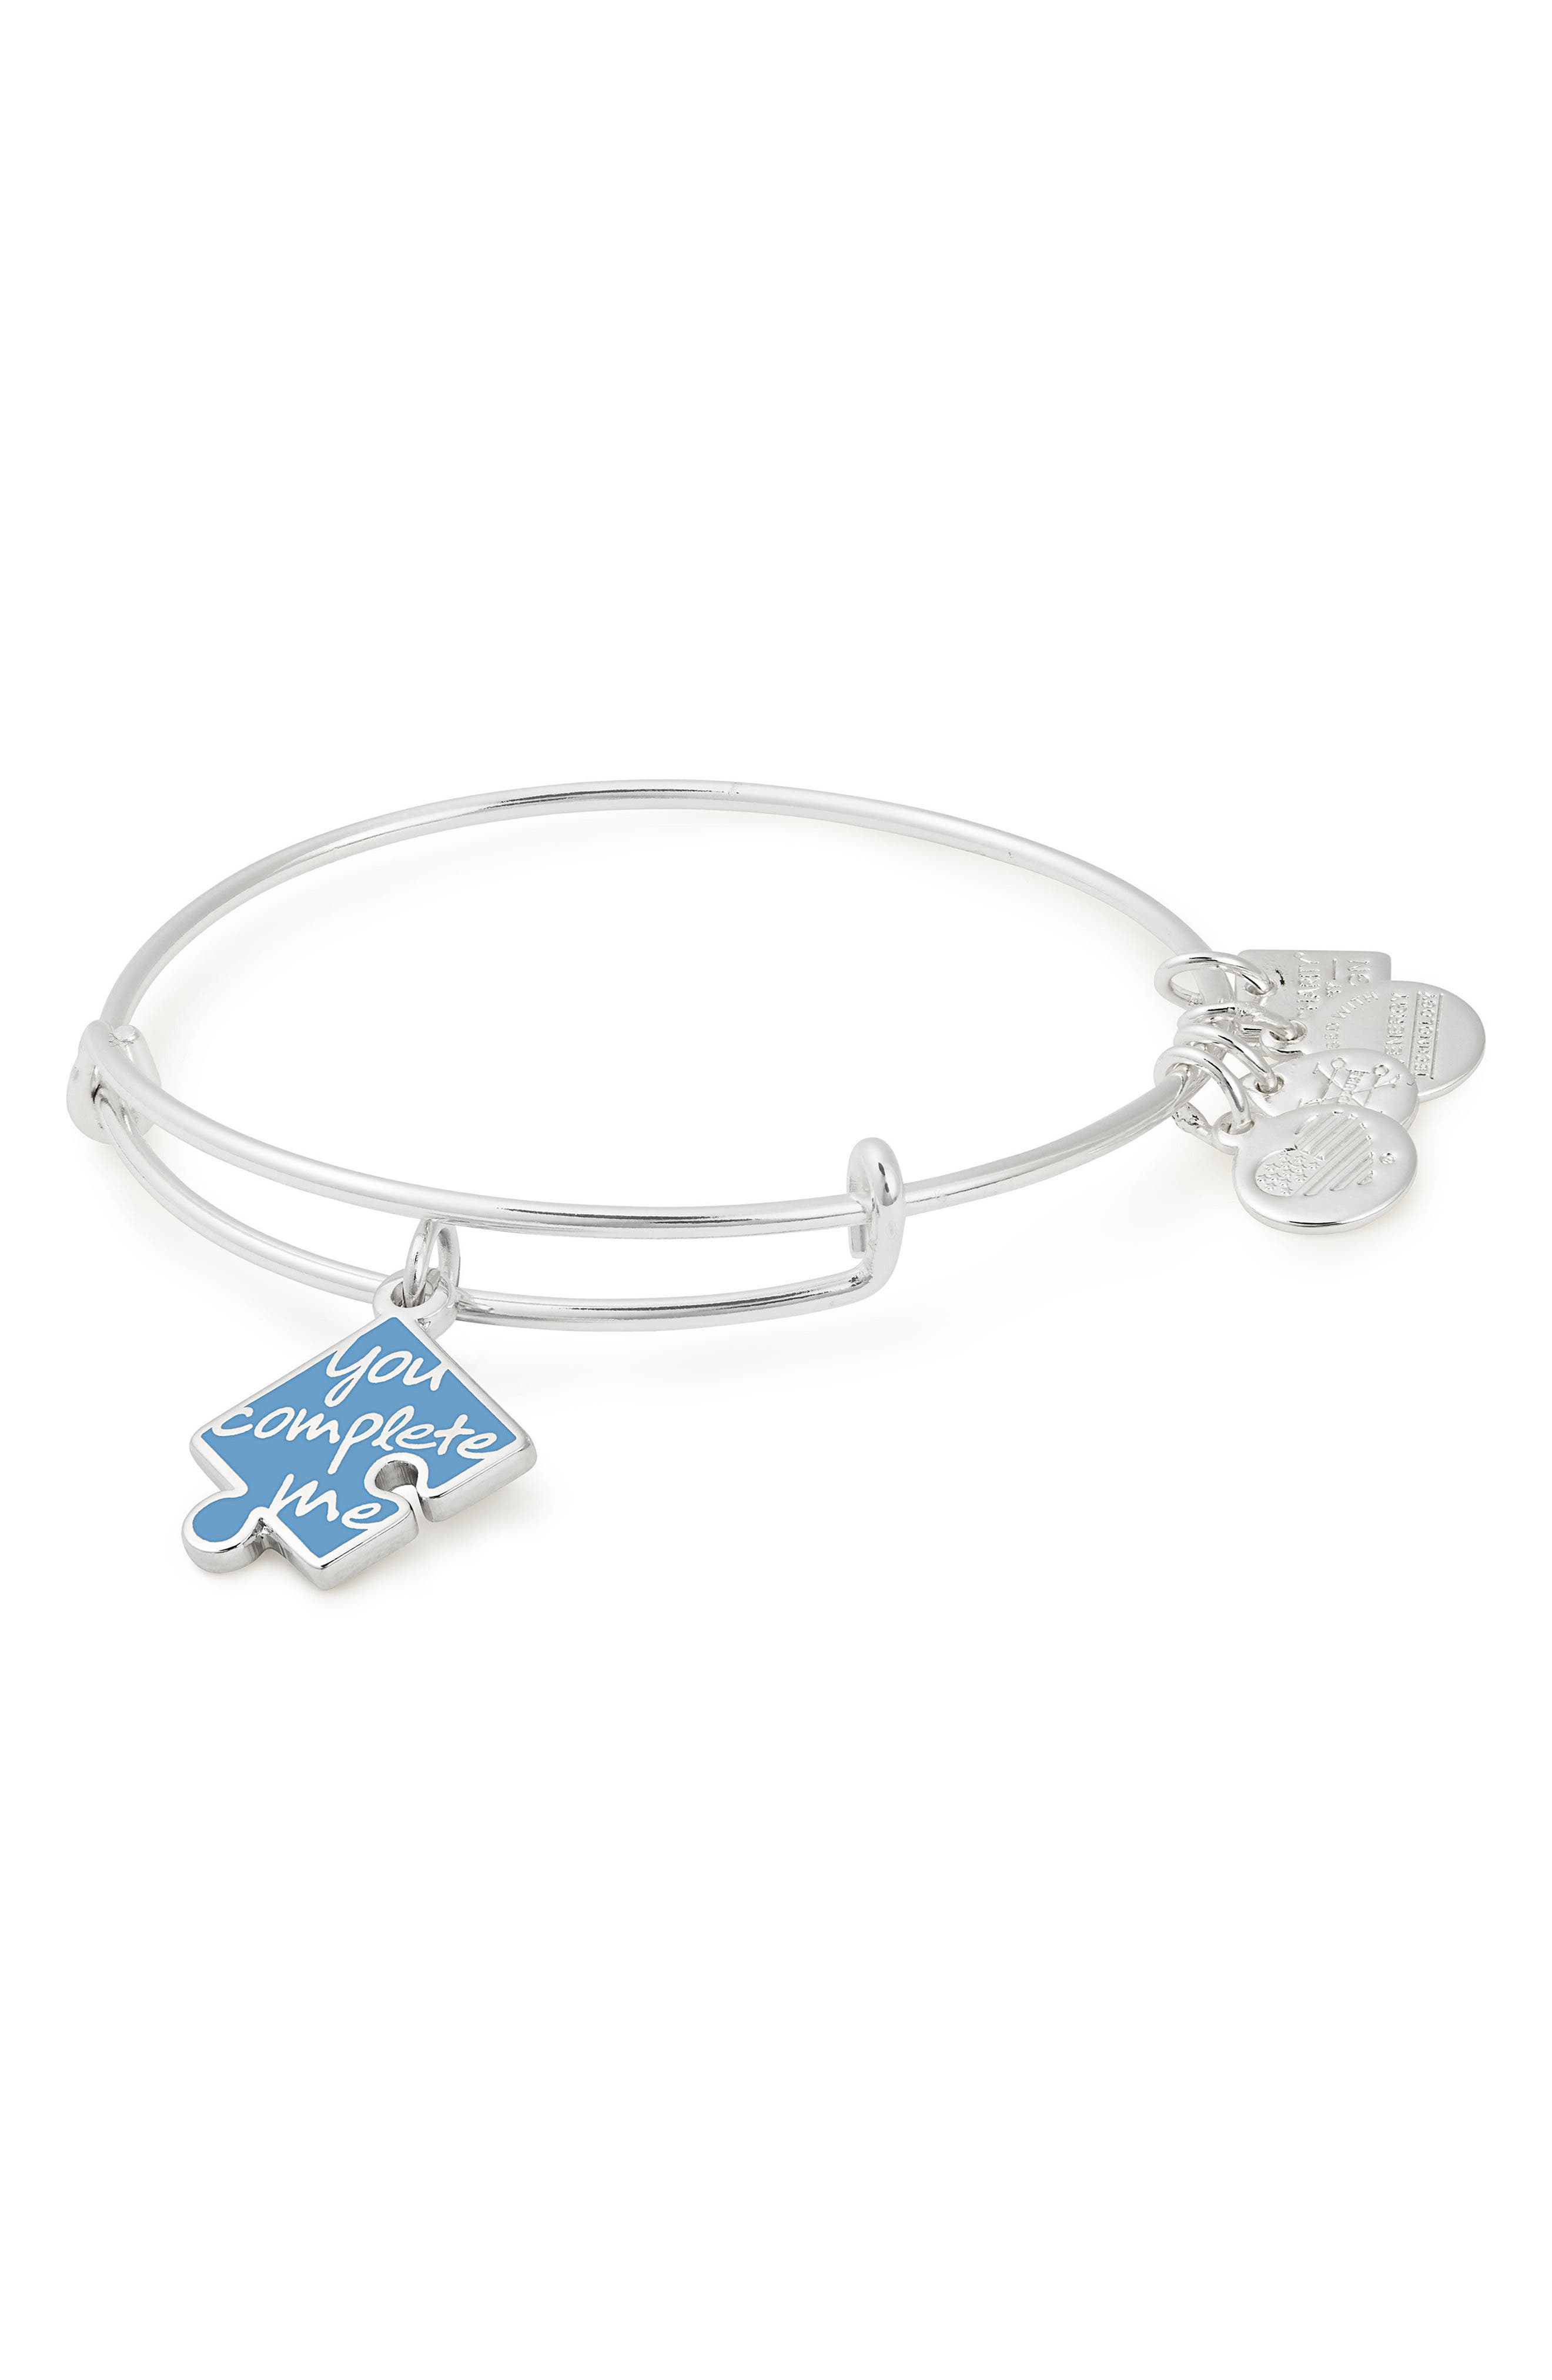 You Complete Me Bangle,                         Main,                         color, Silver